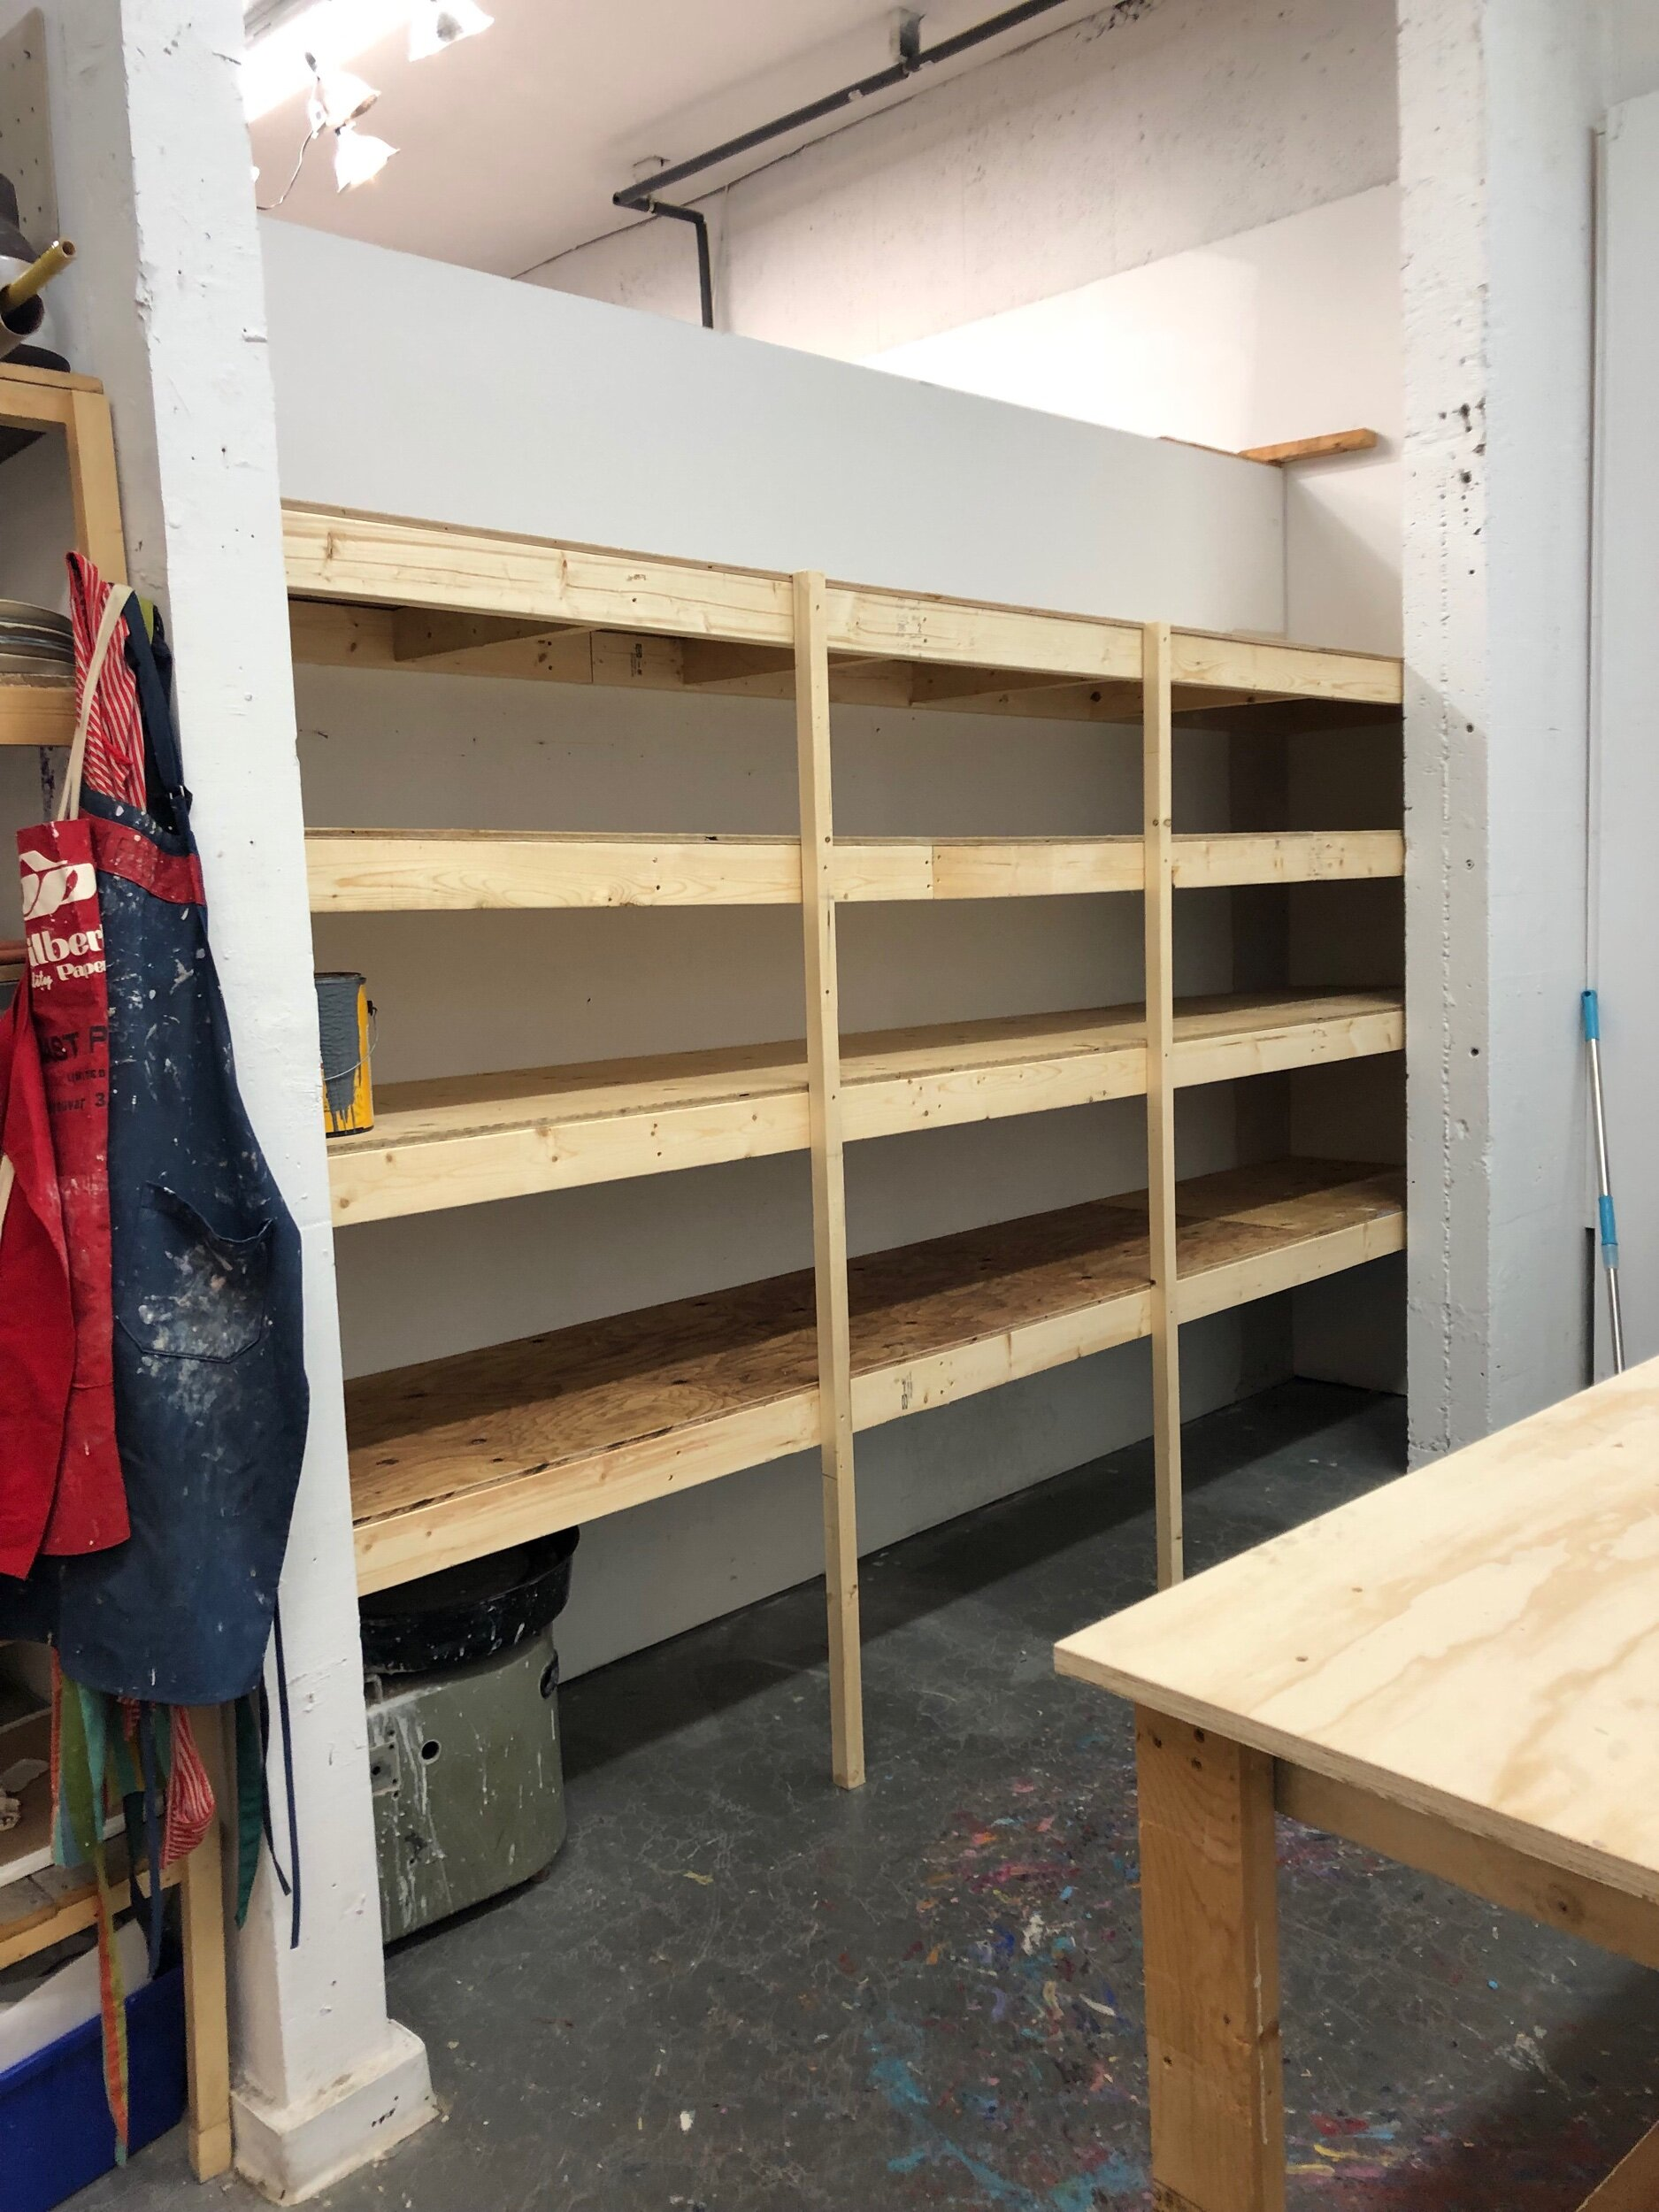 New shelving in the expanded studio space!